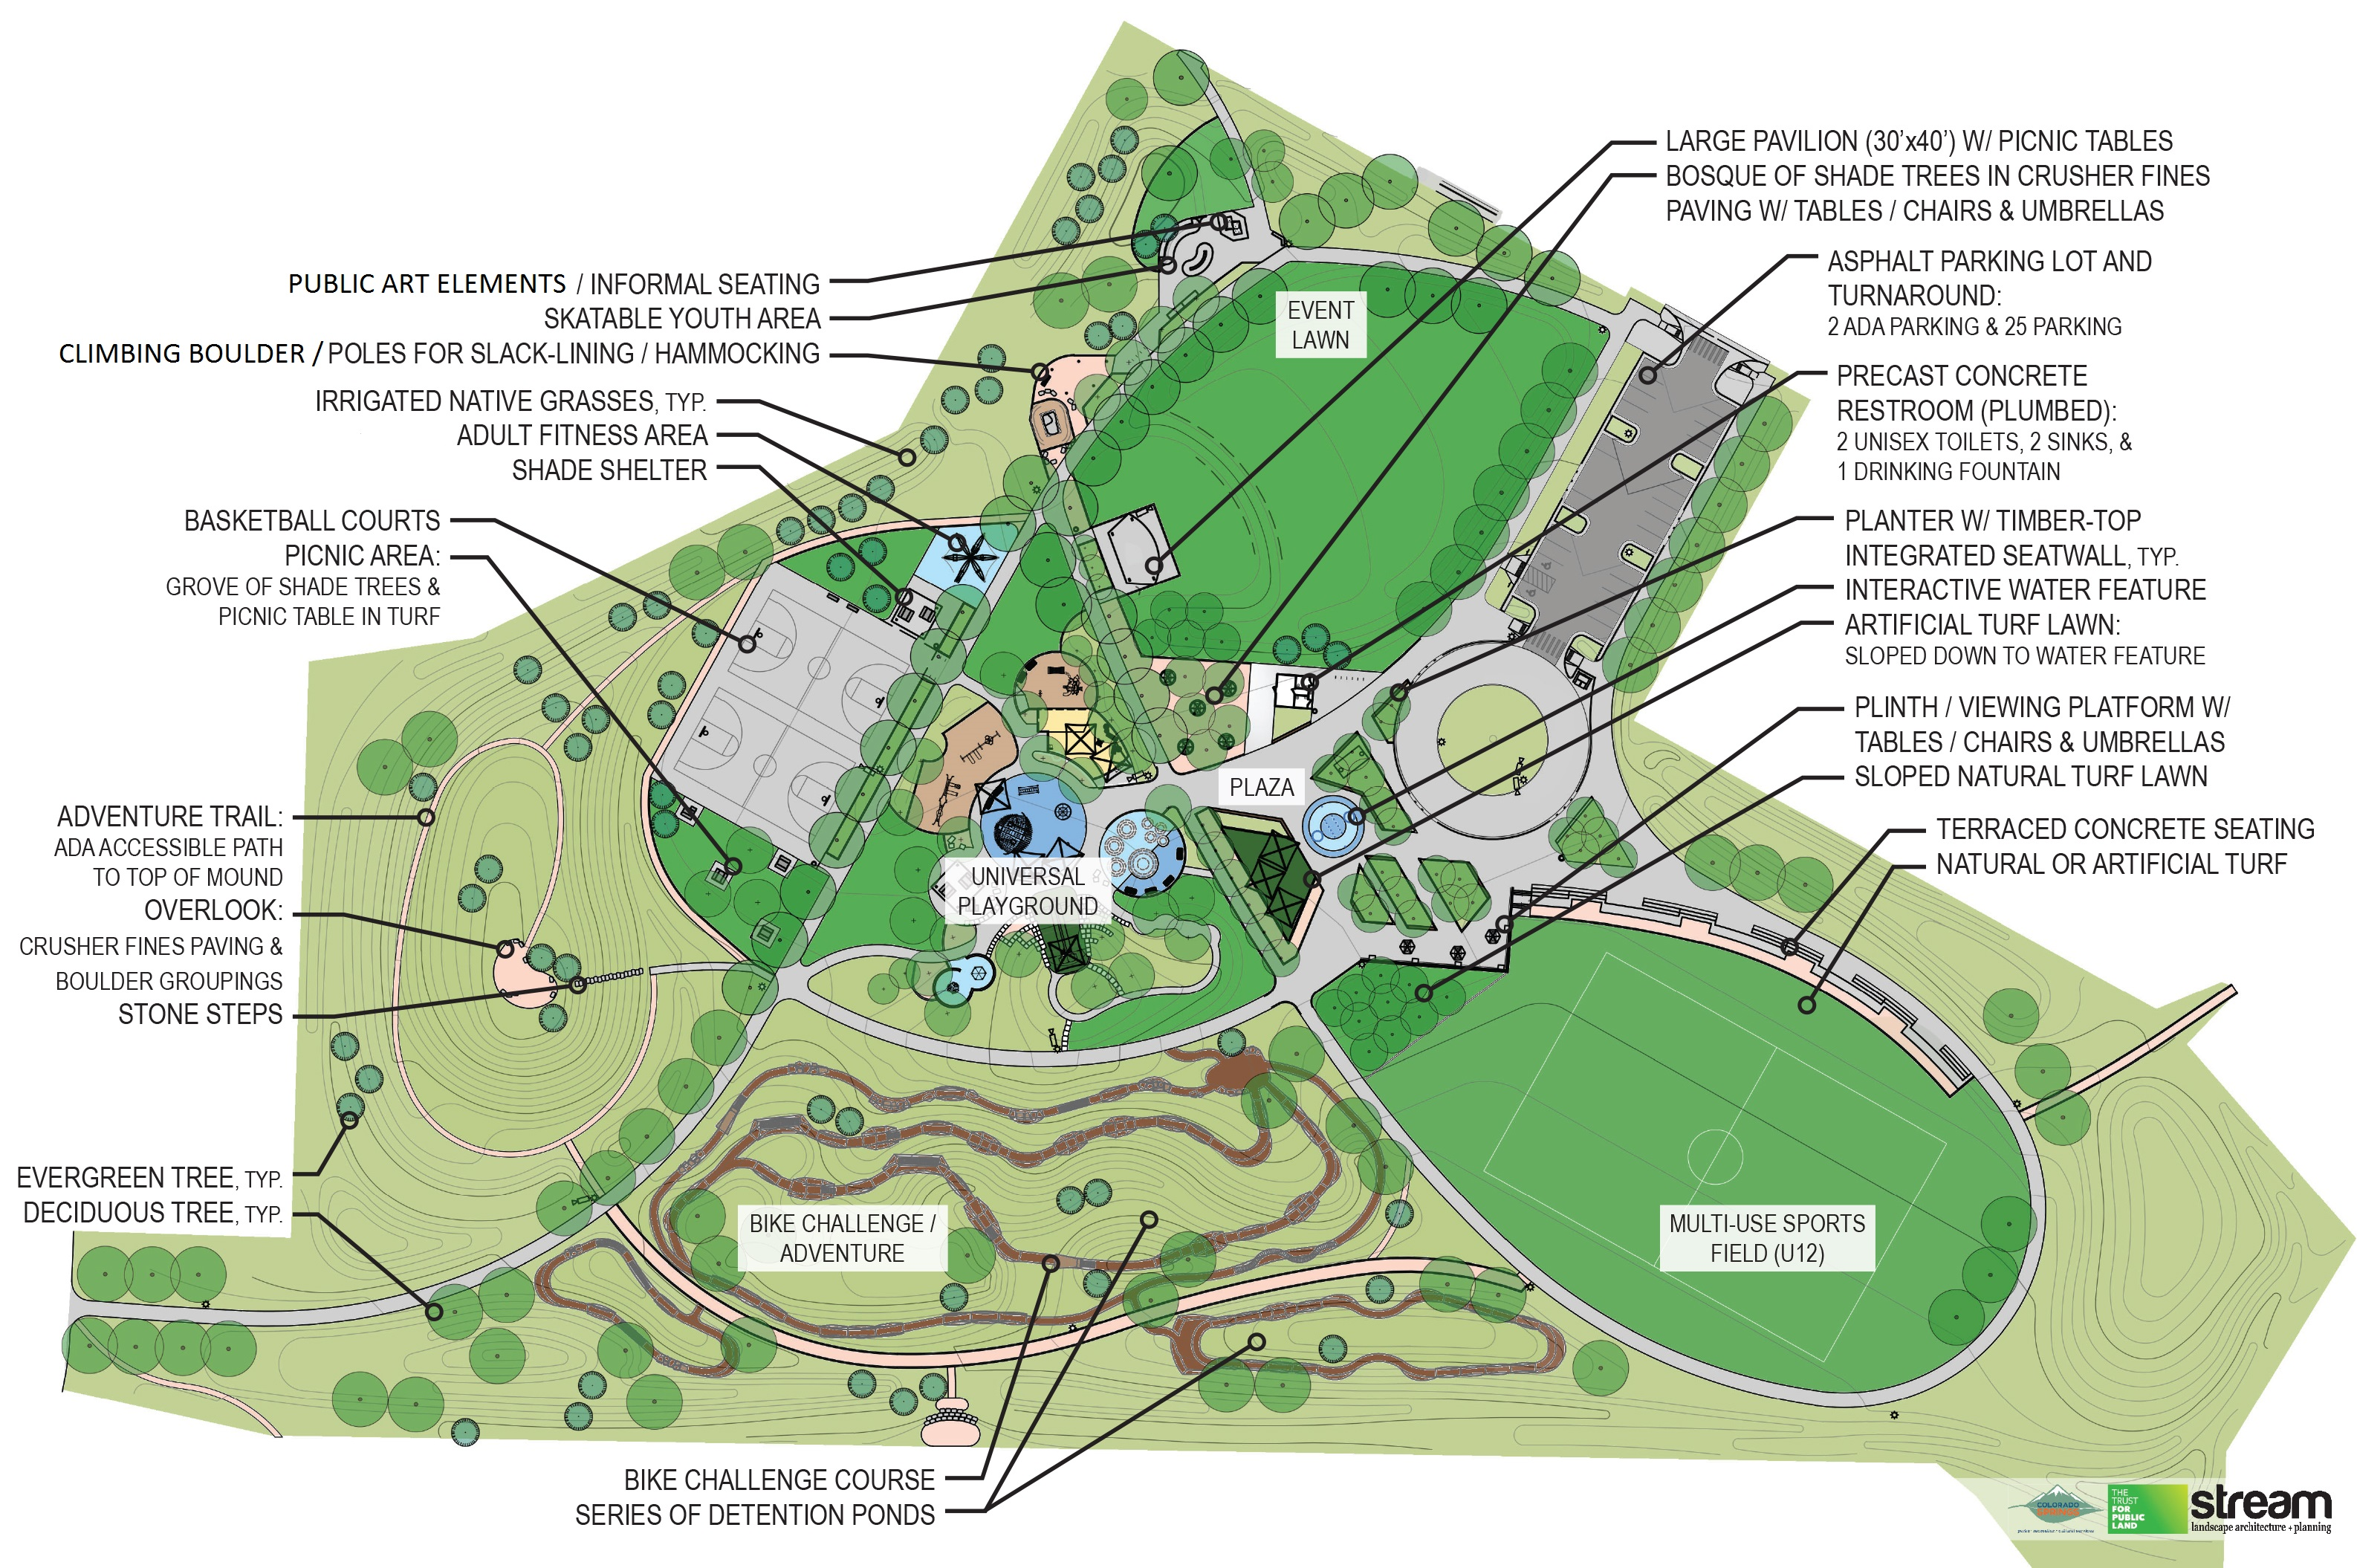 map of planned park updates